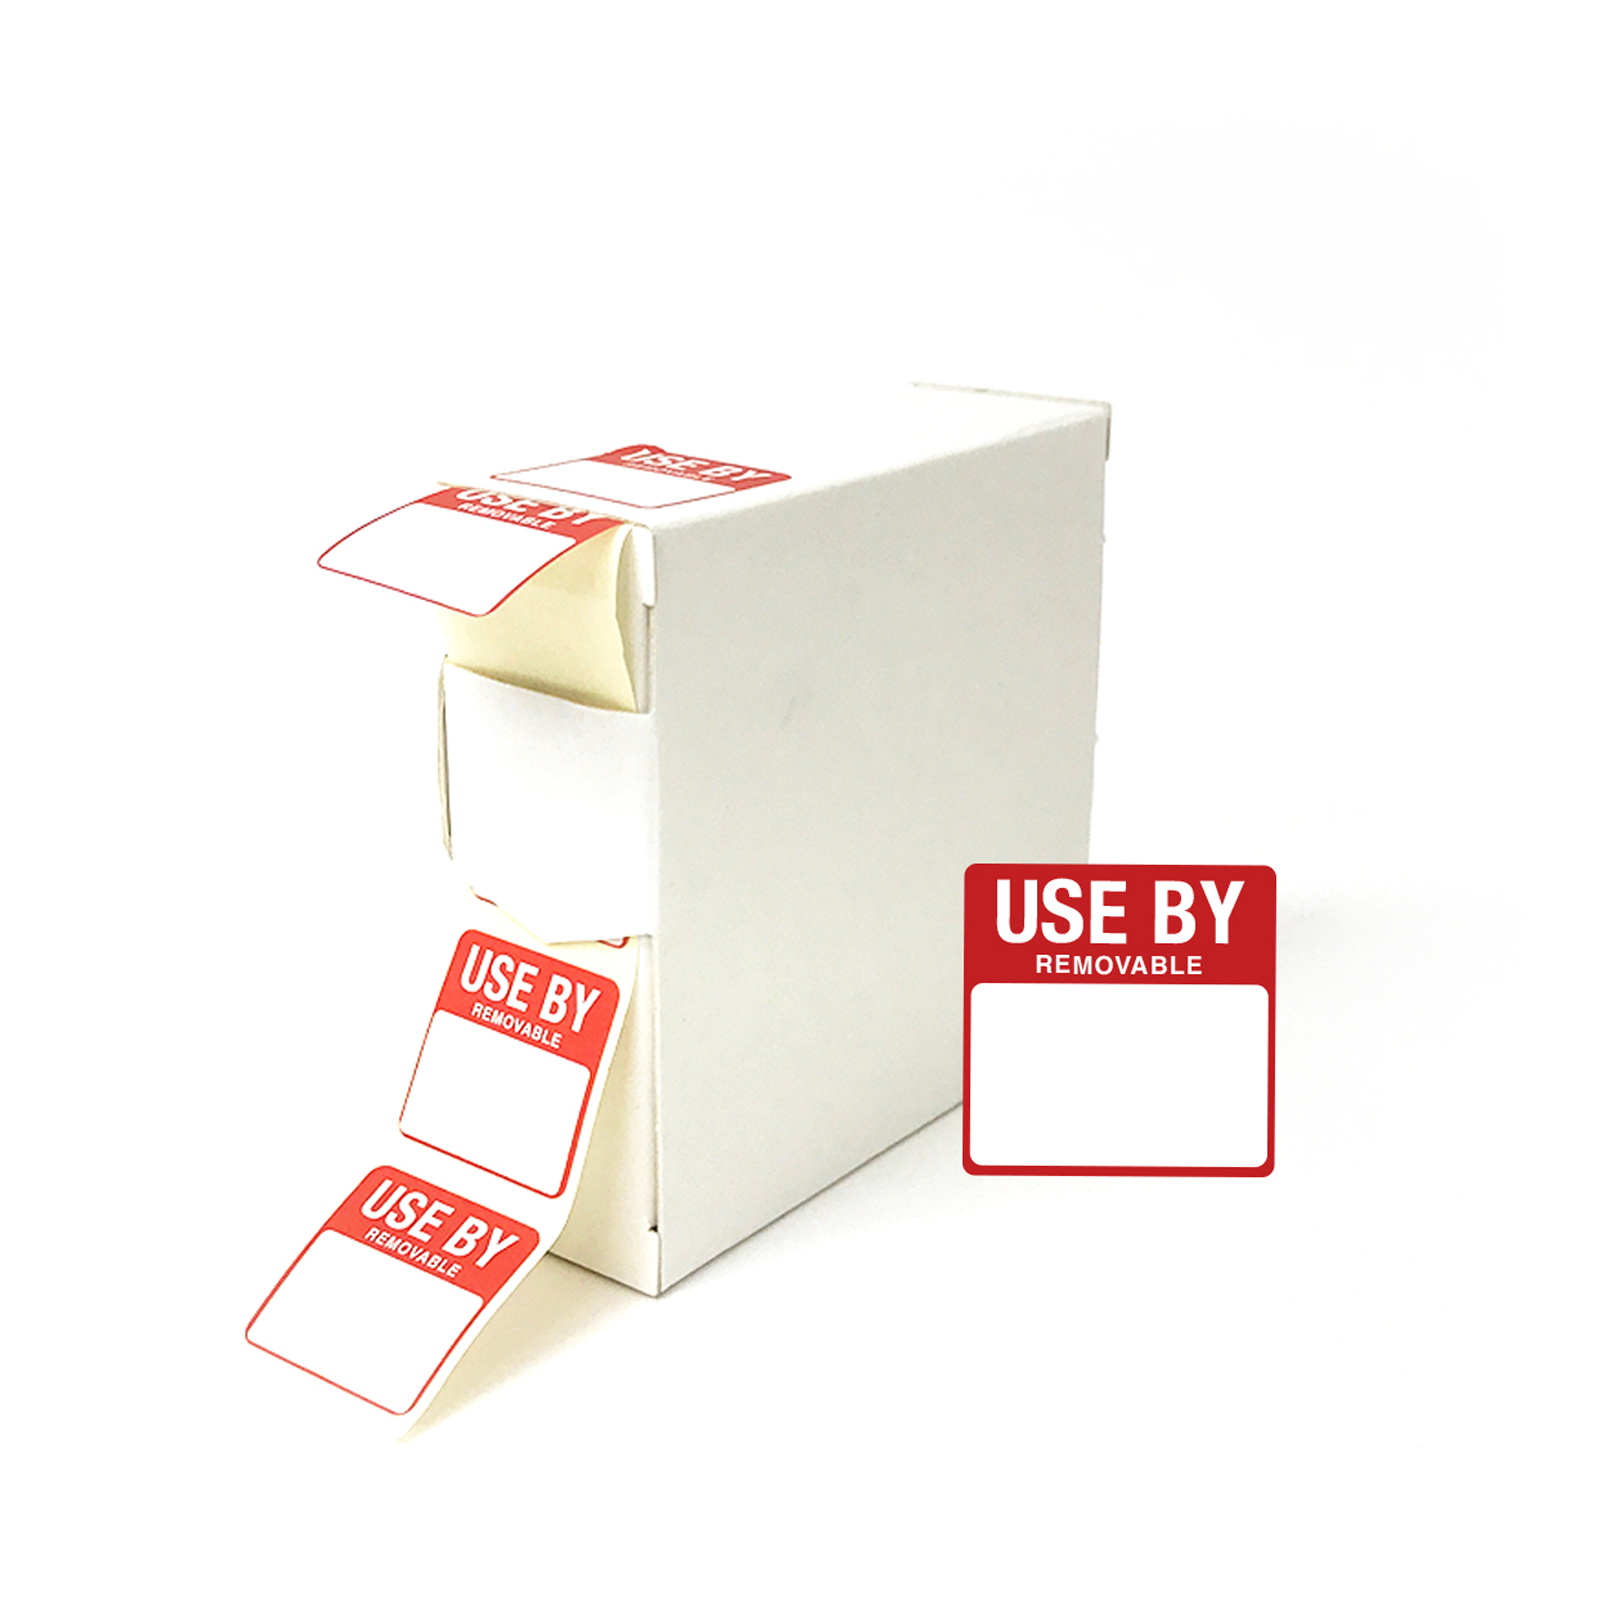 Removable Use By Date Food Storage Labels. (1000 labels per roll)